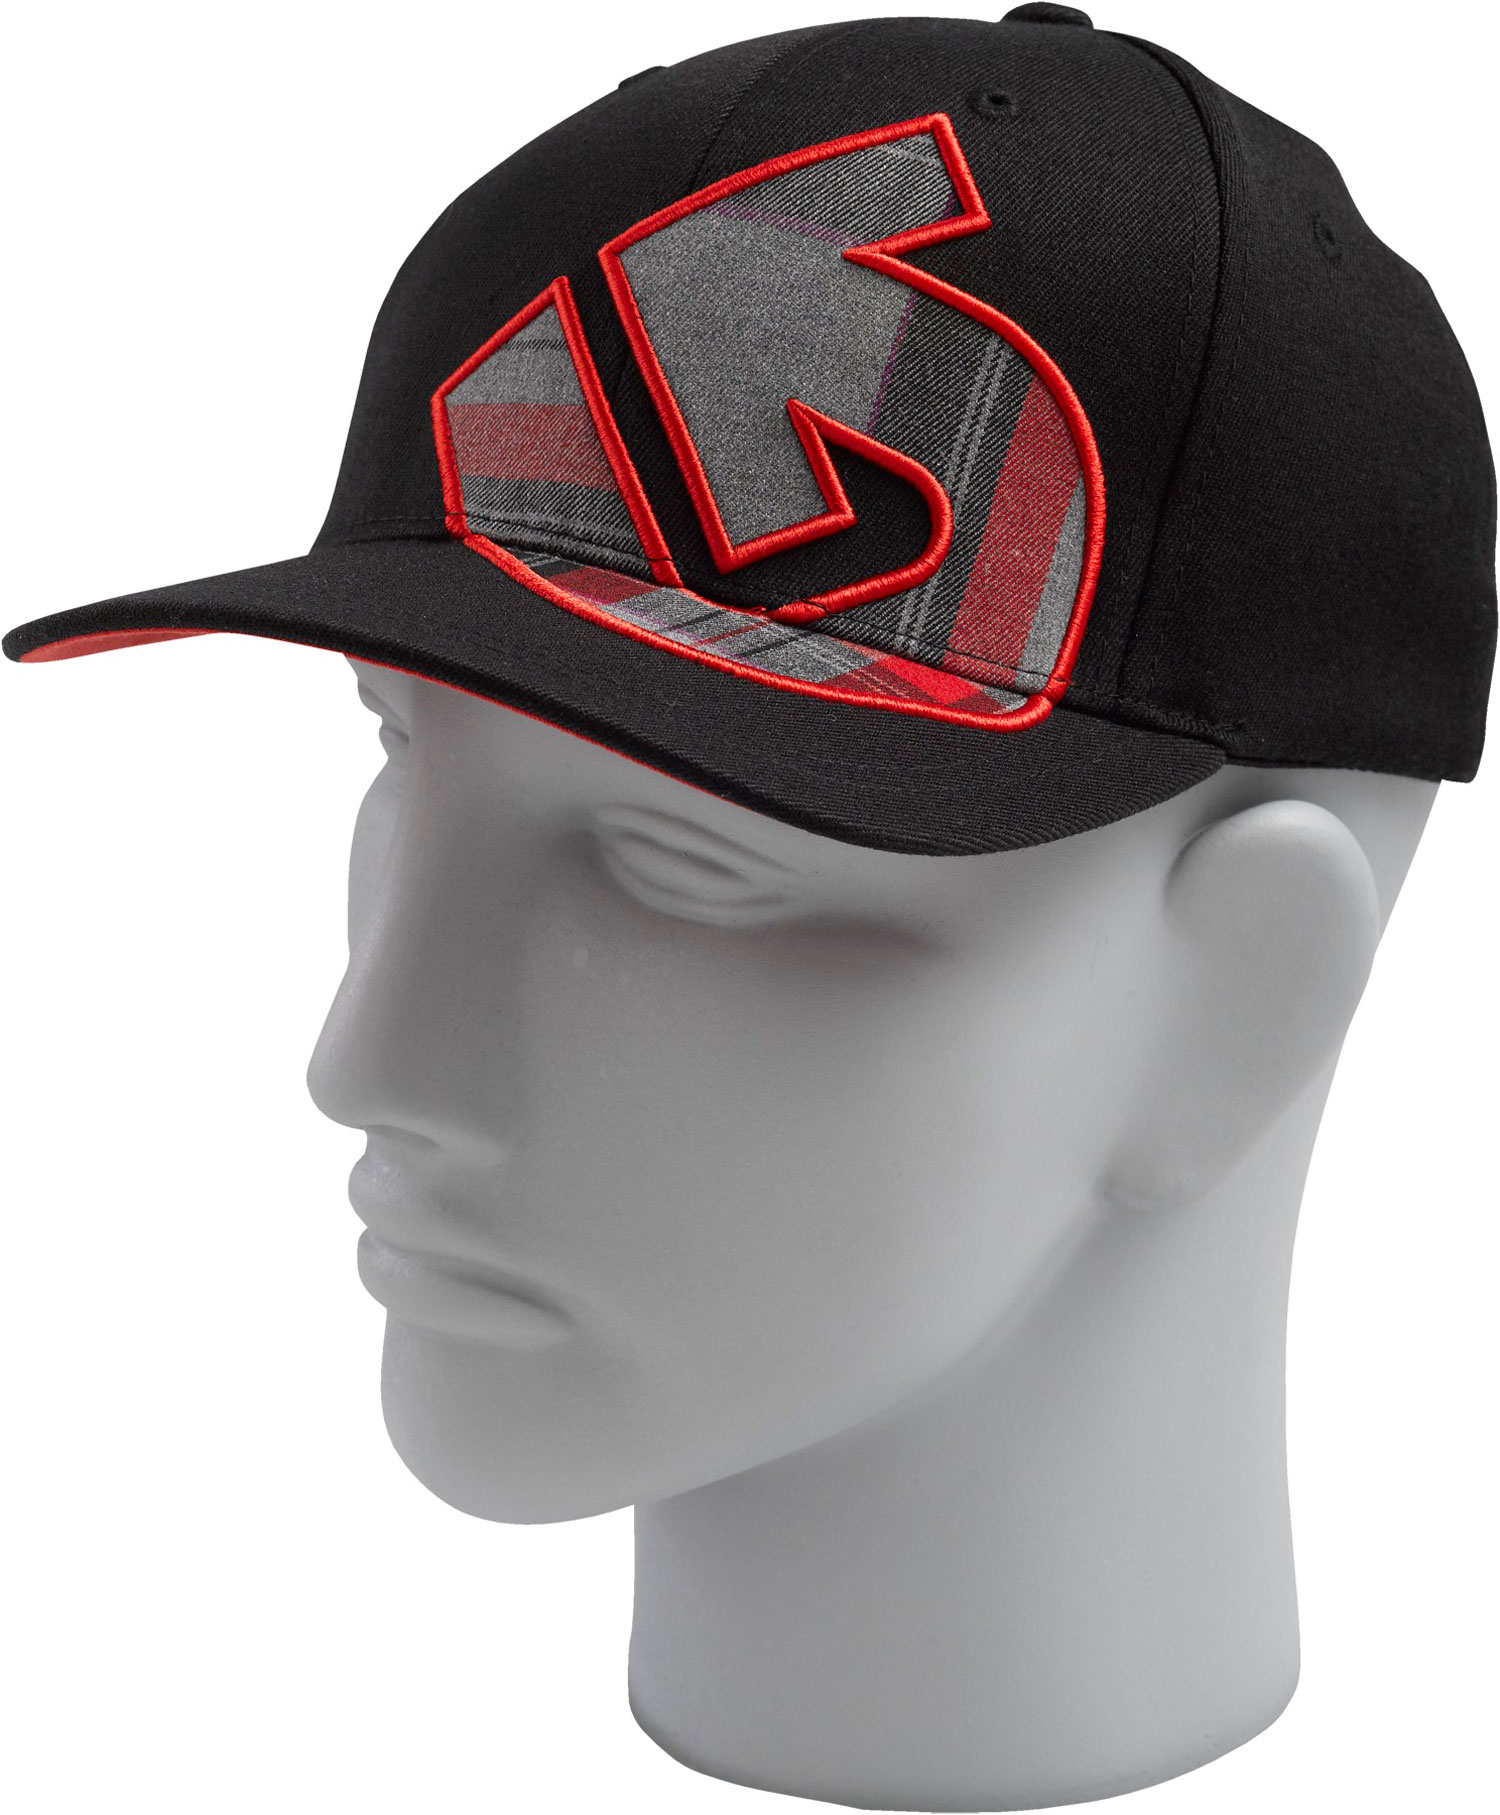 Snowboard Key Features of the Burton Slidestyle Flexfit Cap: 83% Acrylic, 15% Wool, 2% Spandex Fabric Filled Logo with Embroidered Outline X-Fit with Curved Visor - $27.00